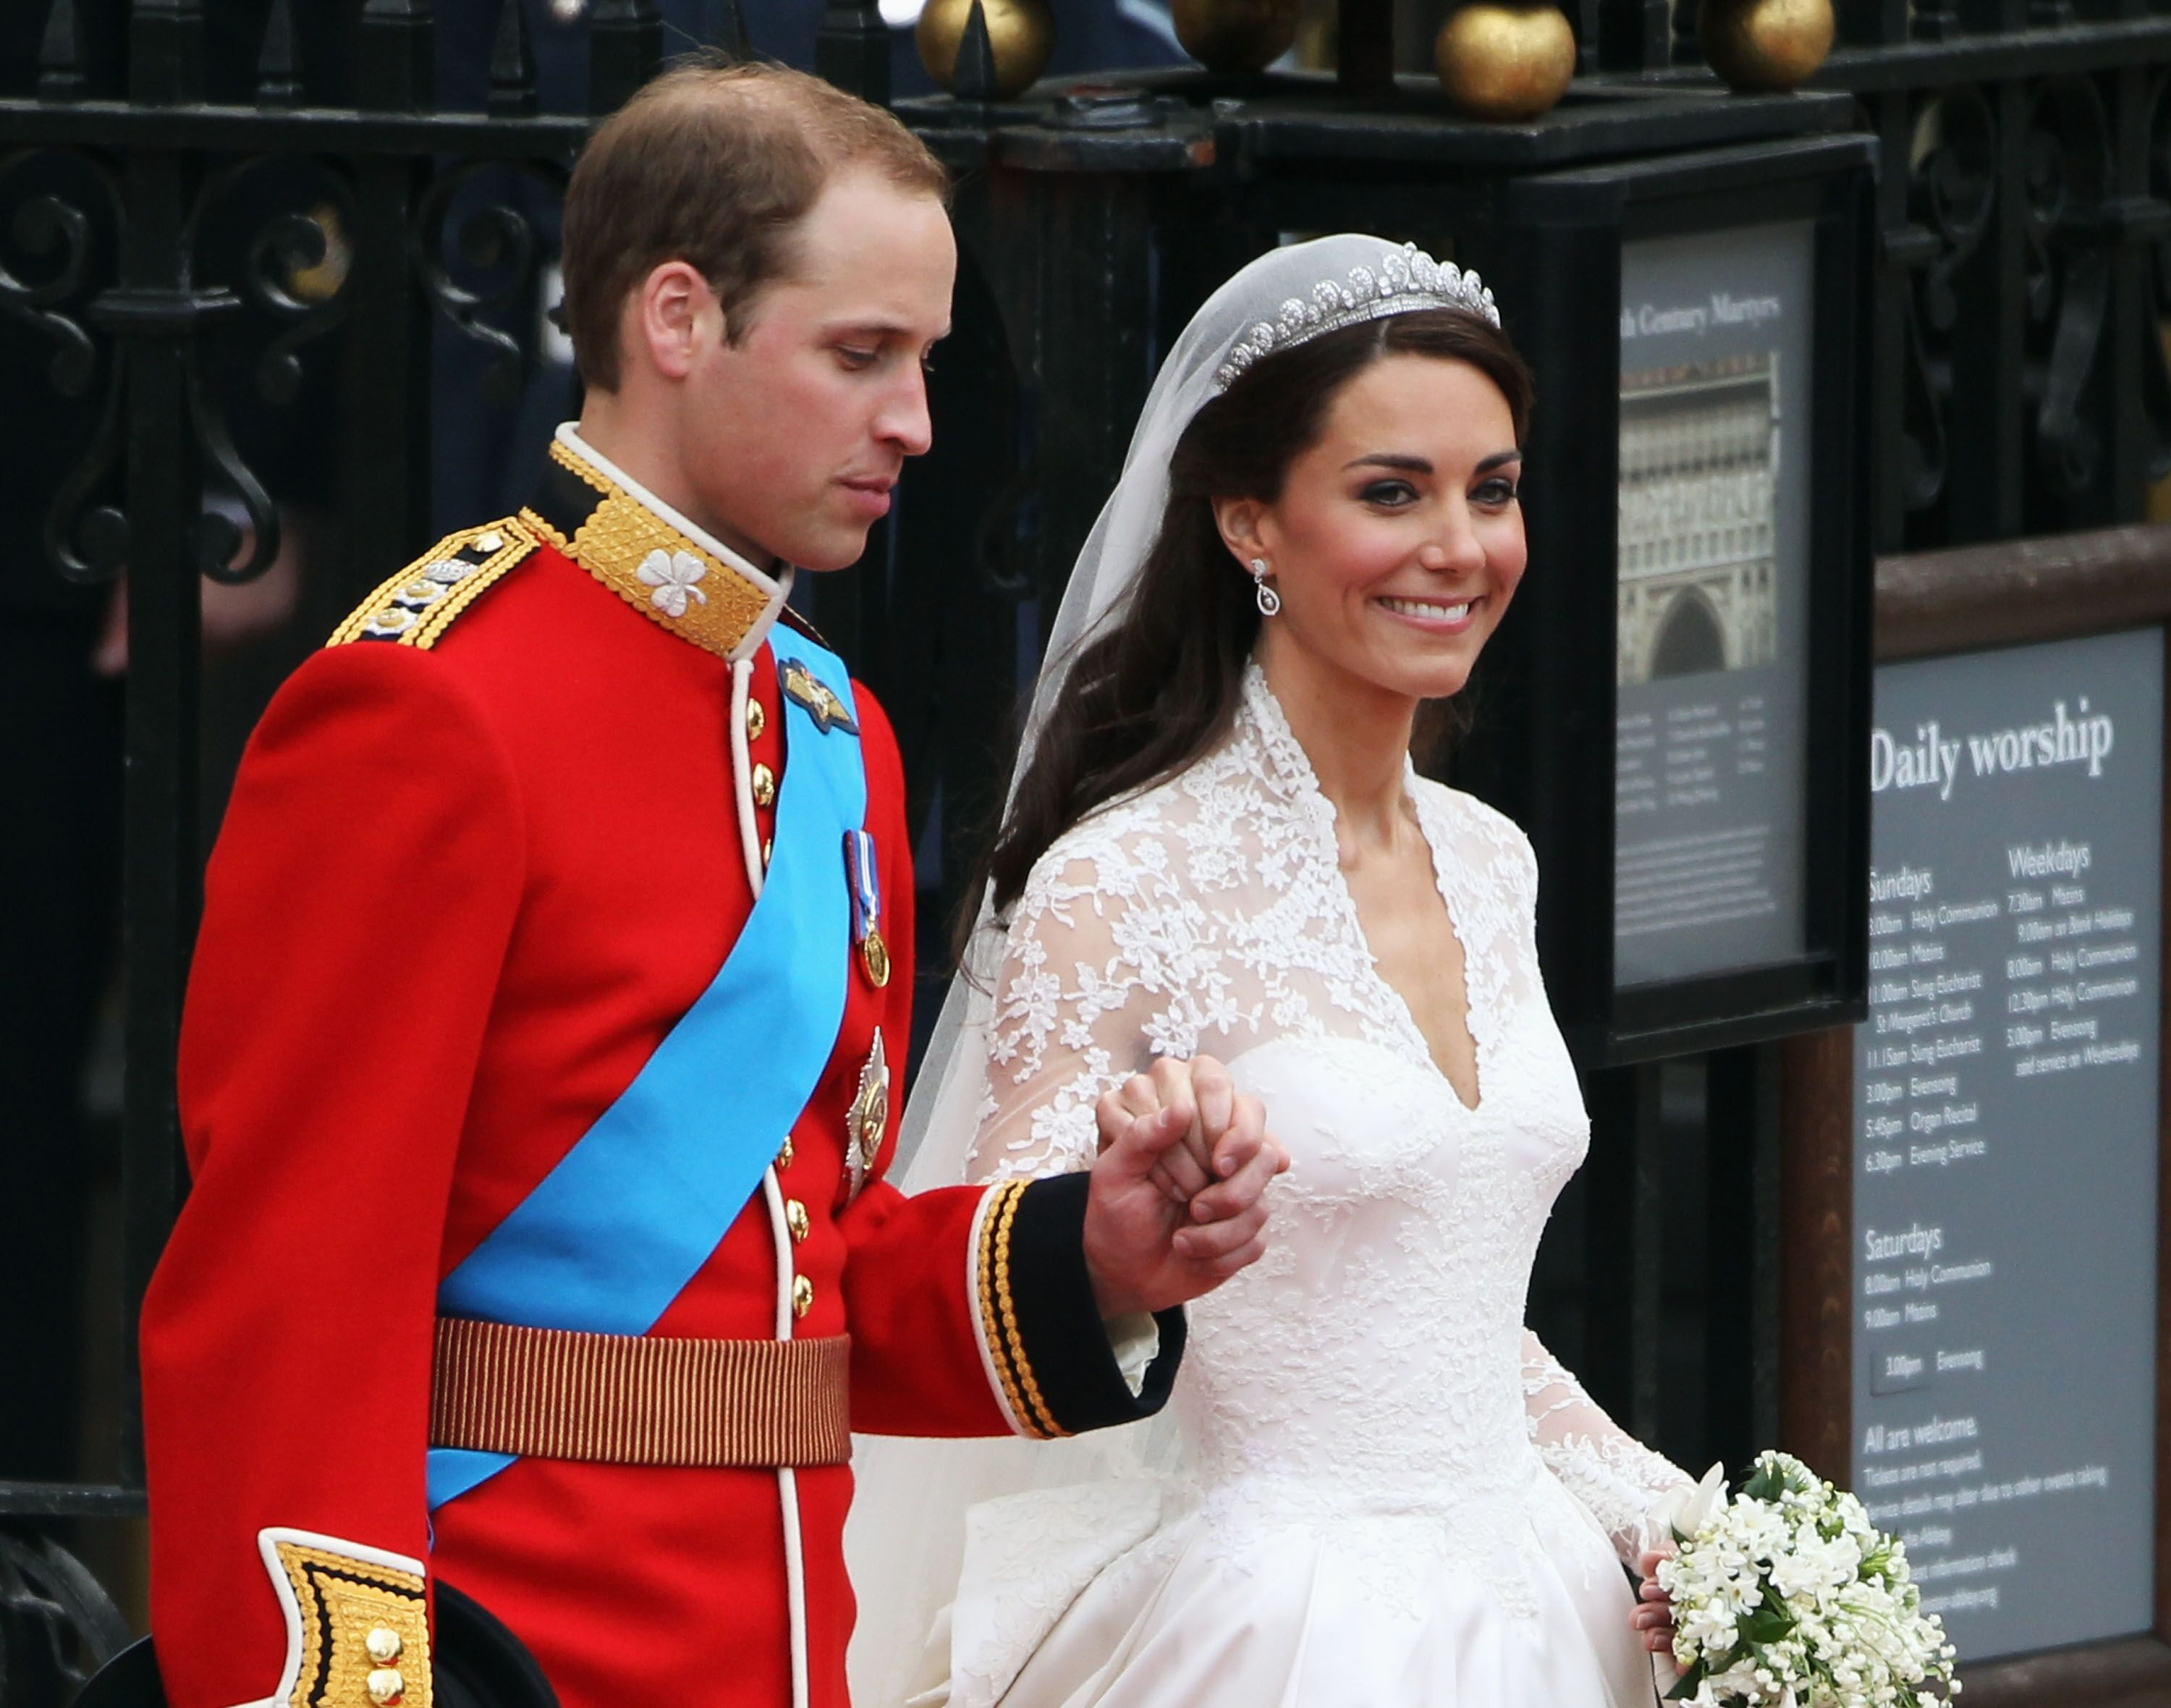 Kate Middleton et le Prince William lors de leur mariage. | Photo : Getty Images